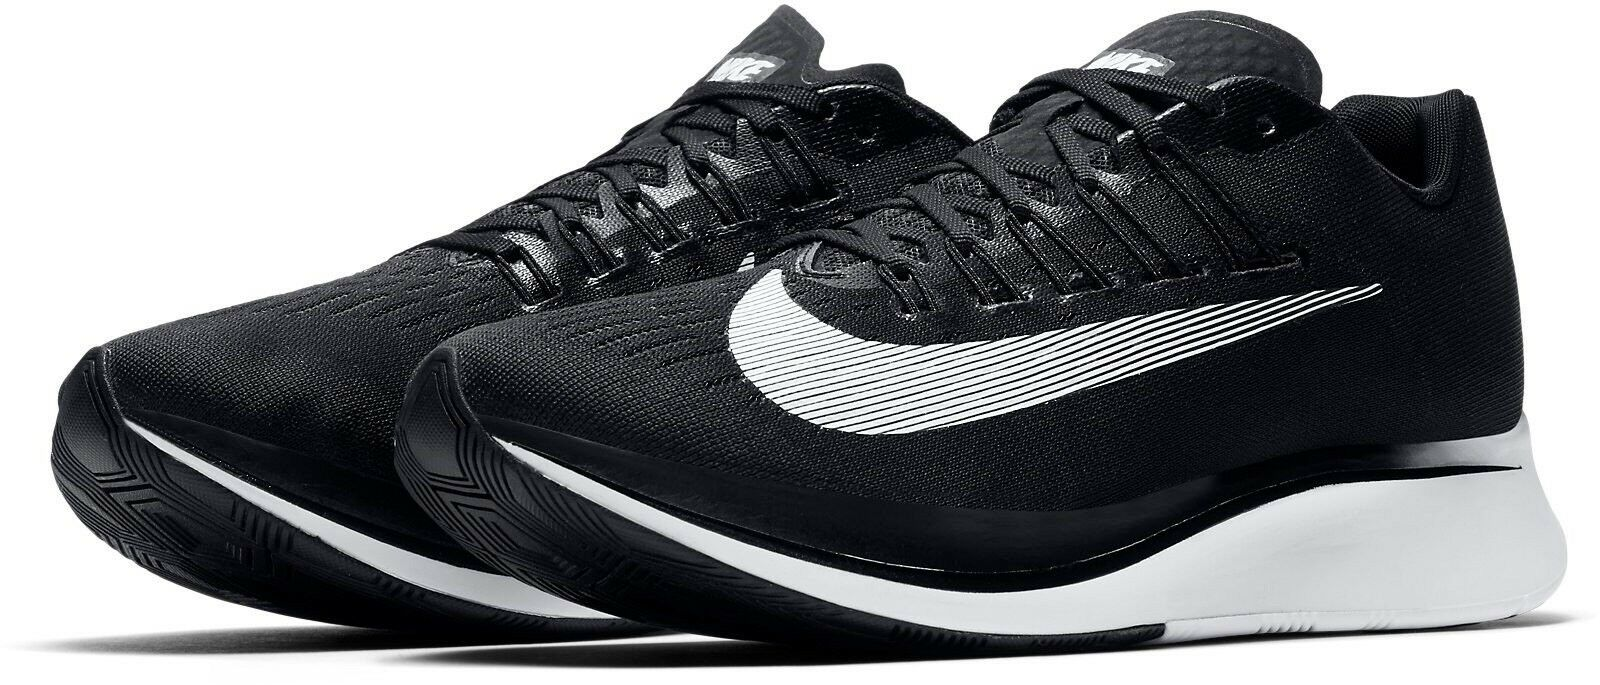 Brand New WMNS Nike Zoom Fly 897821-001 Black White Size 11